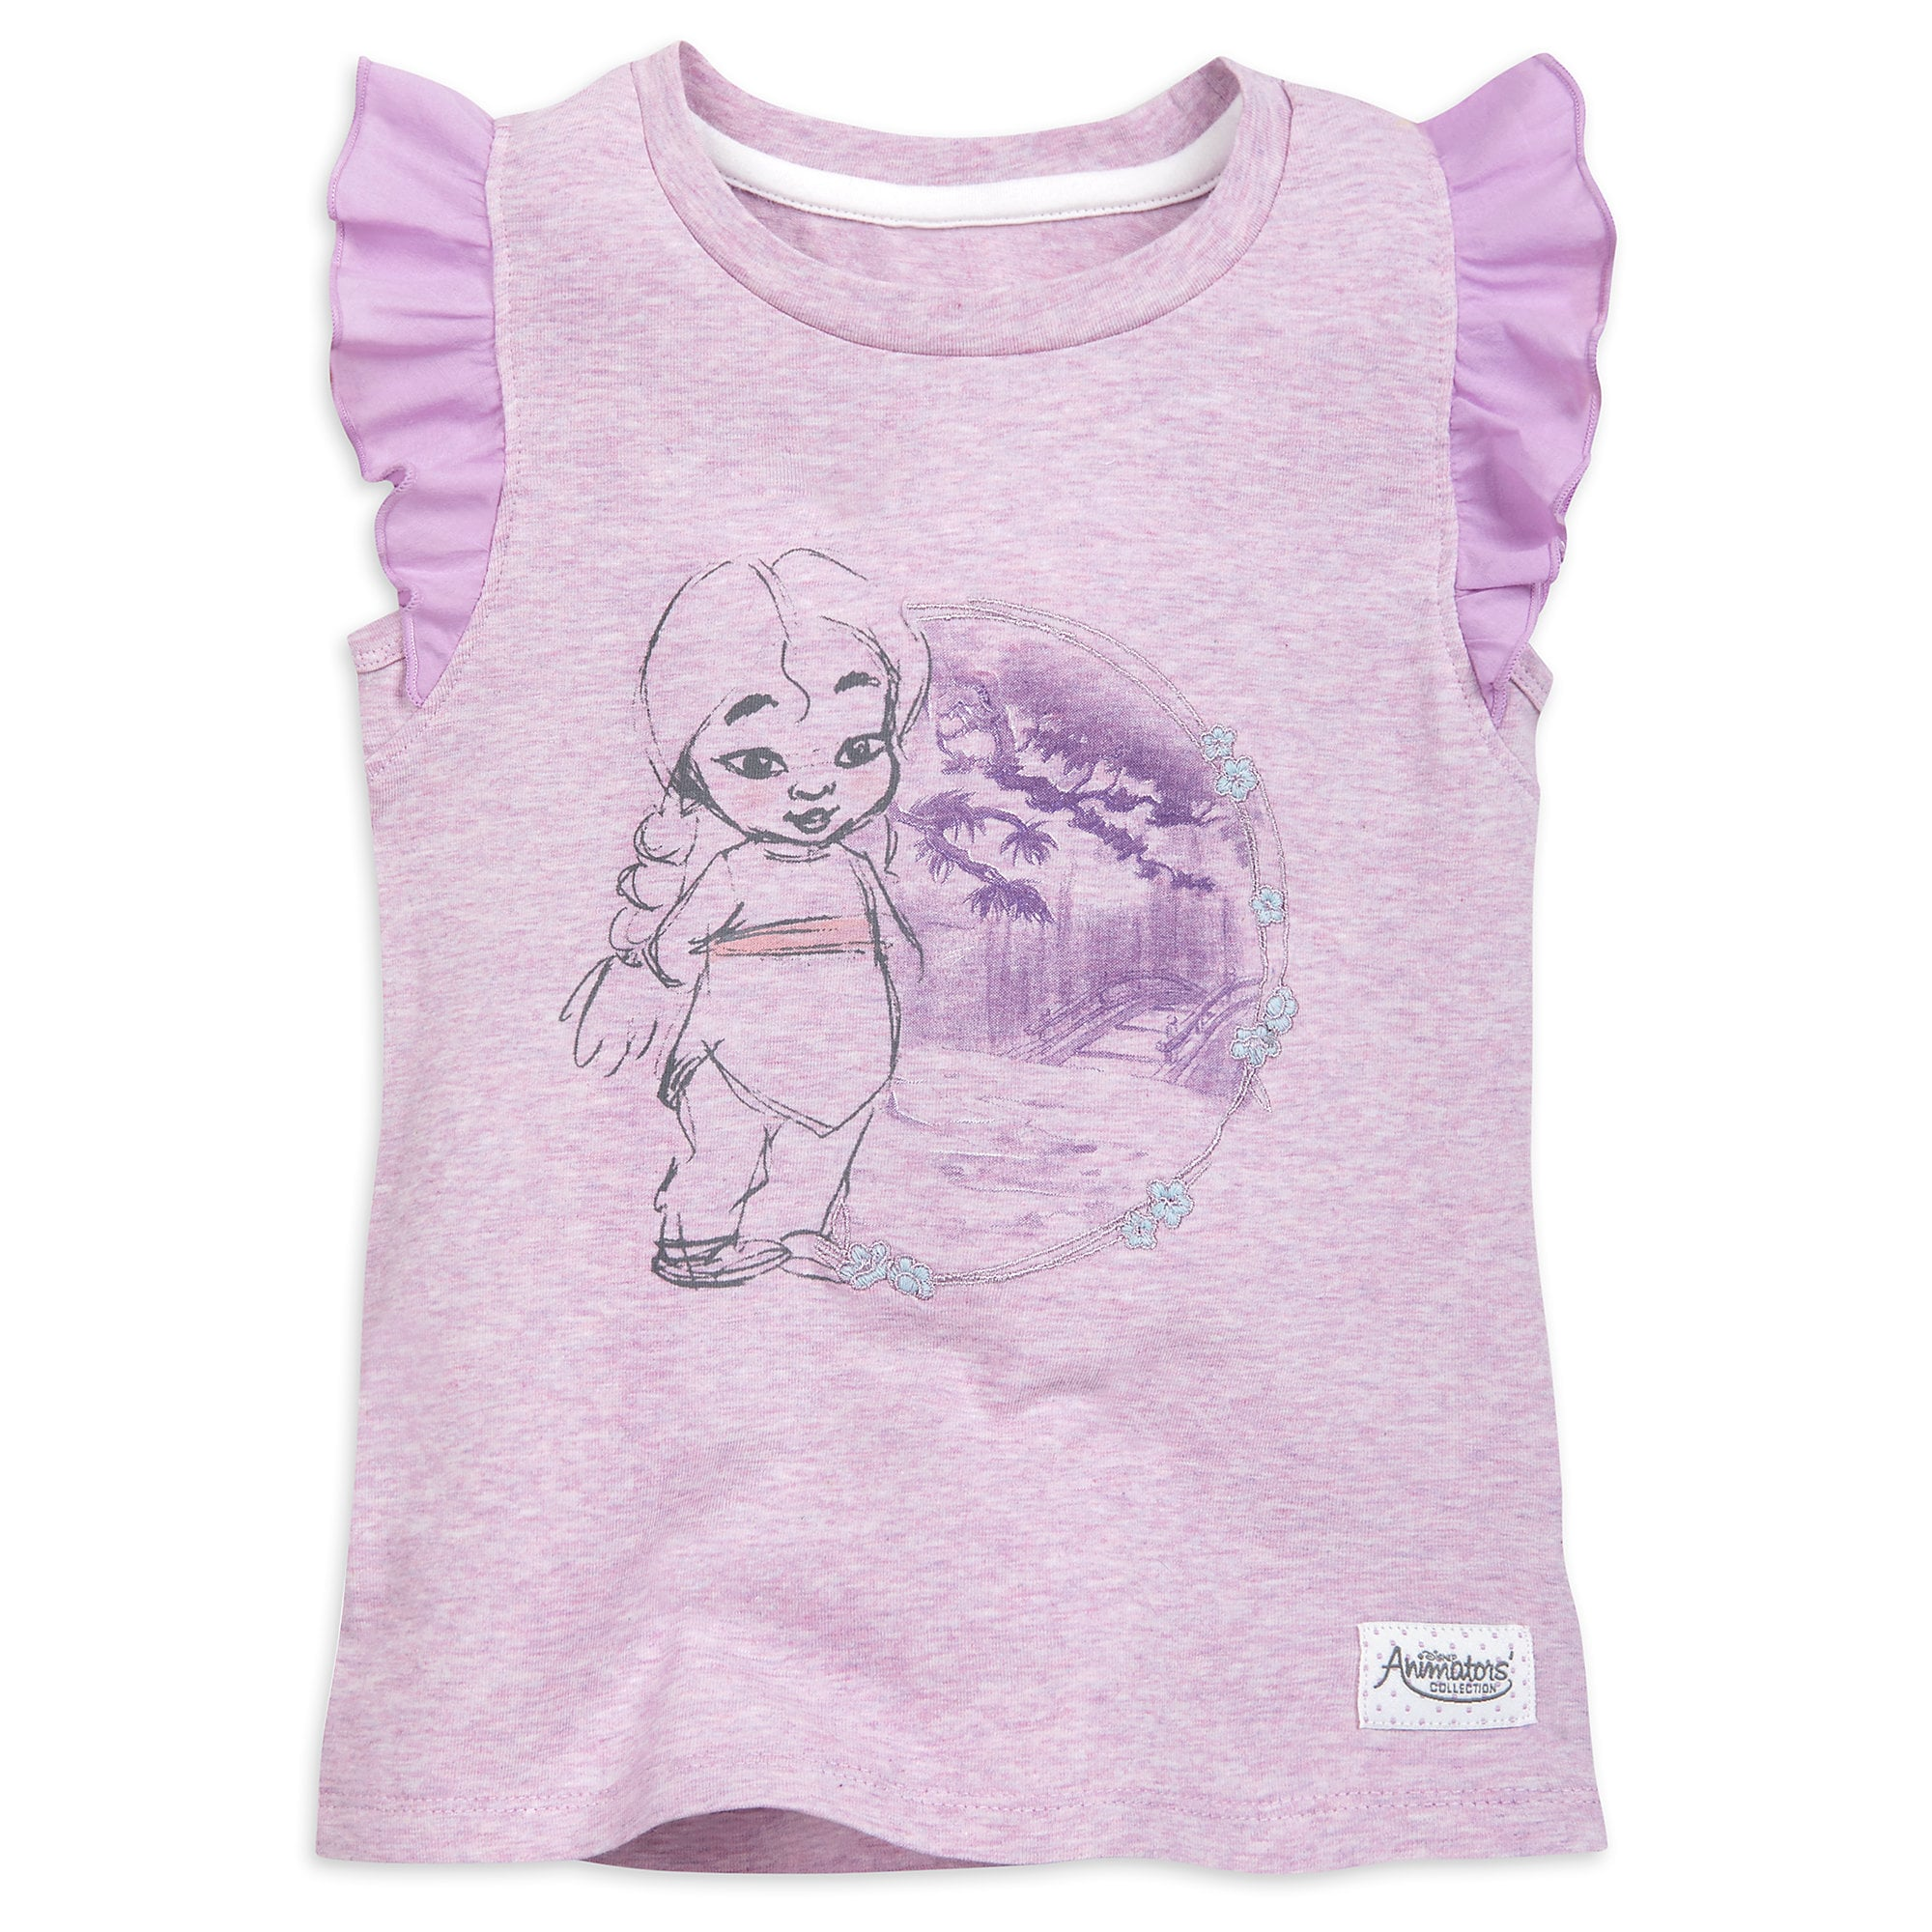 Mulan Tank Top for Girls - Disney Animators' Collection